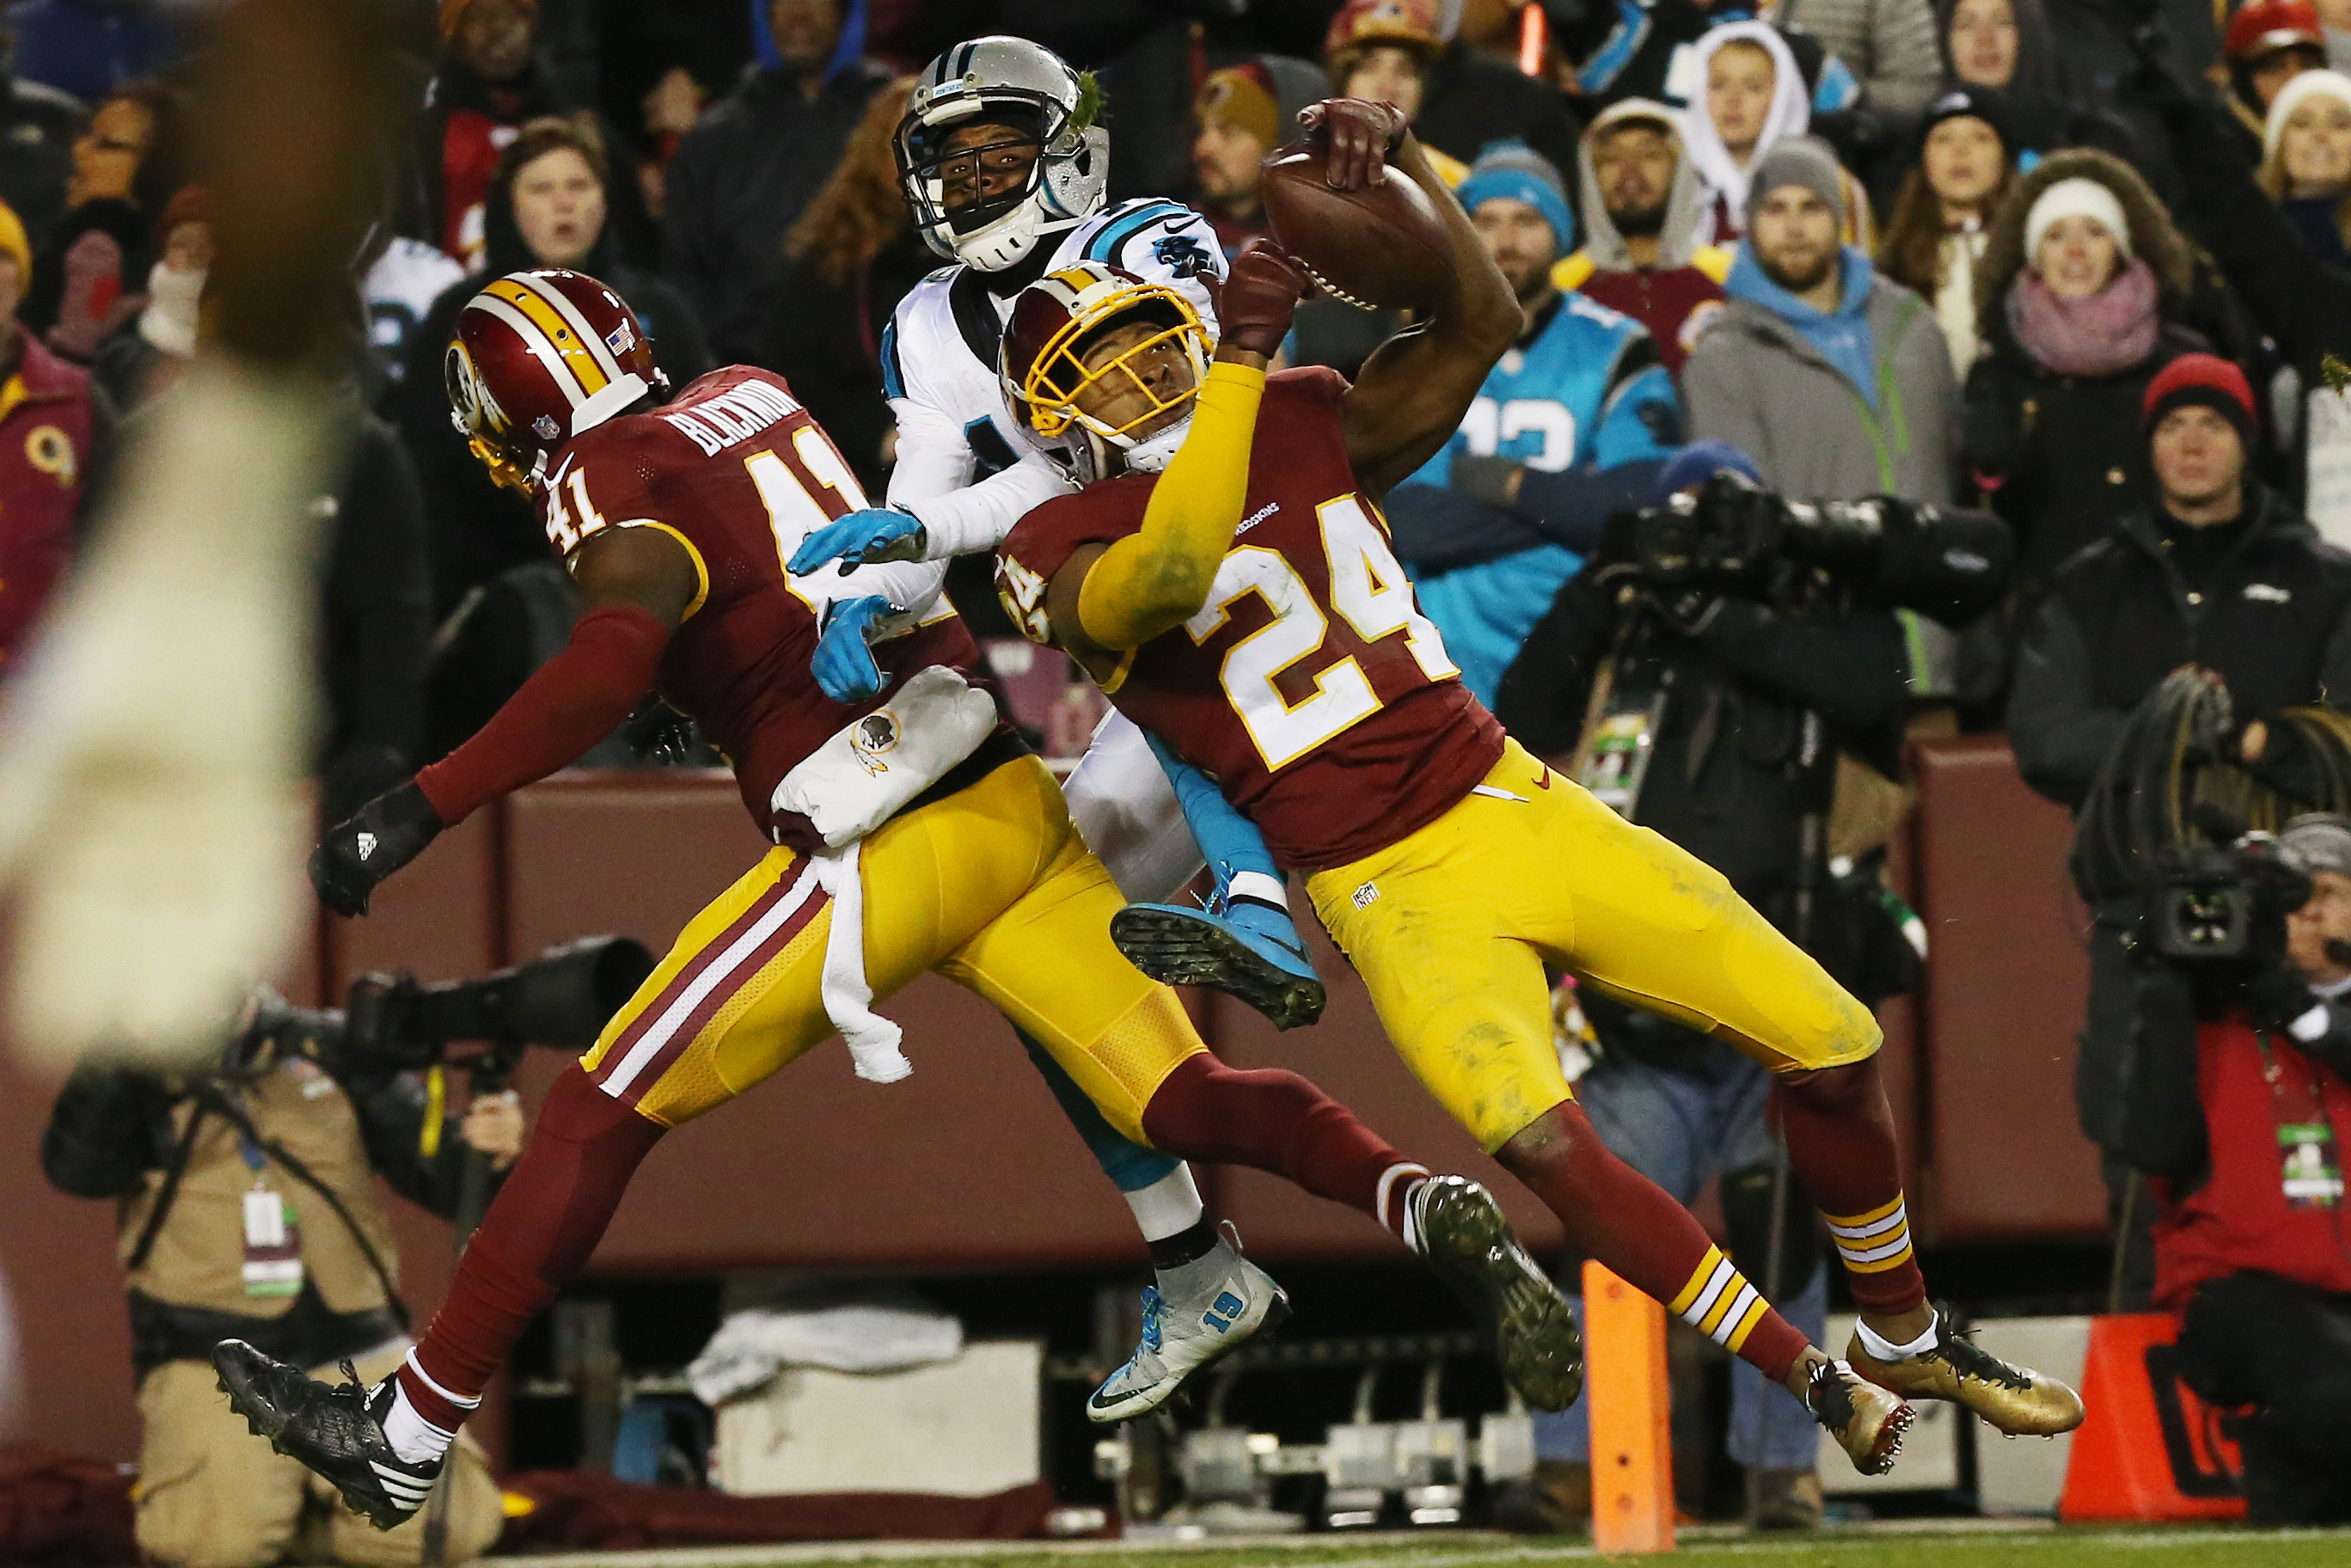 9758409-nfl-carolina-panthers-at-washington-redskins